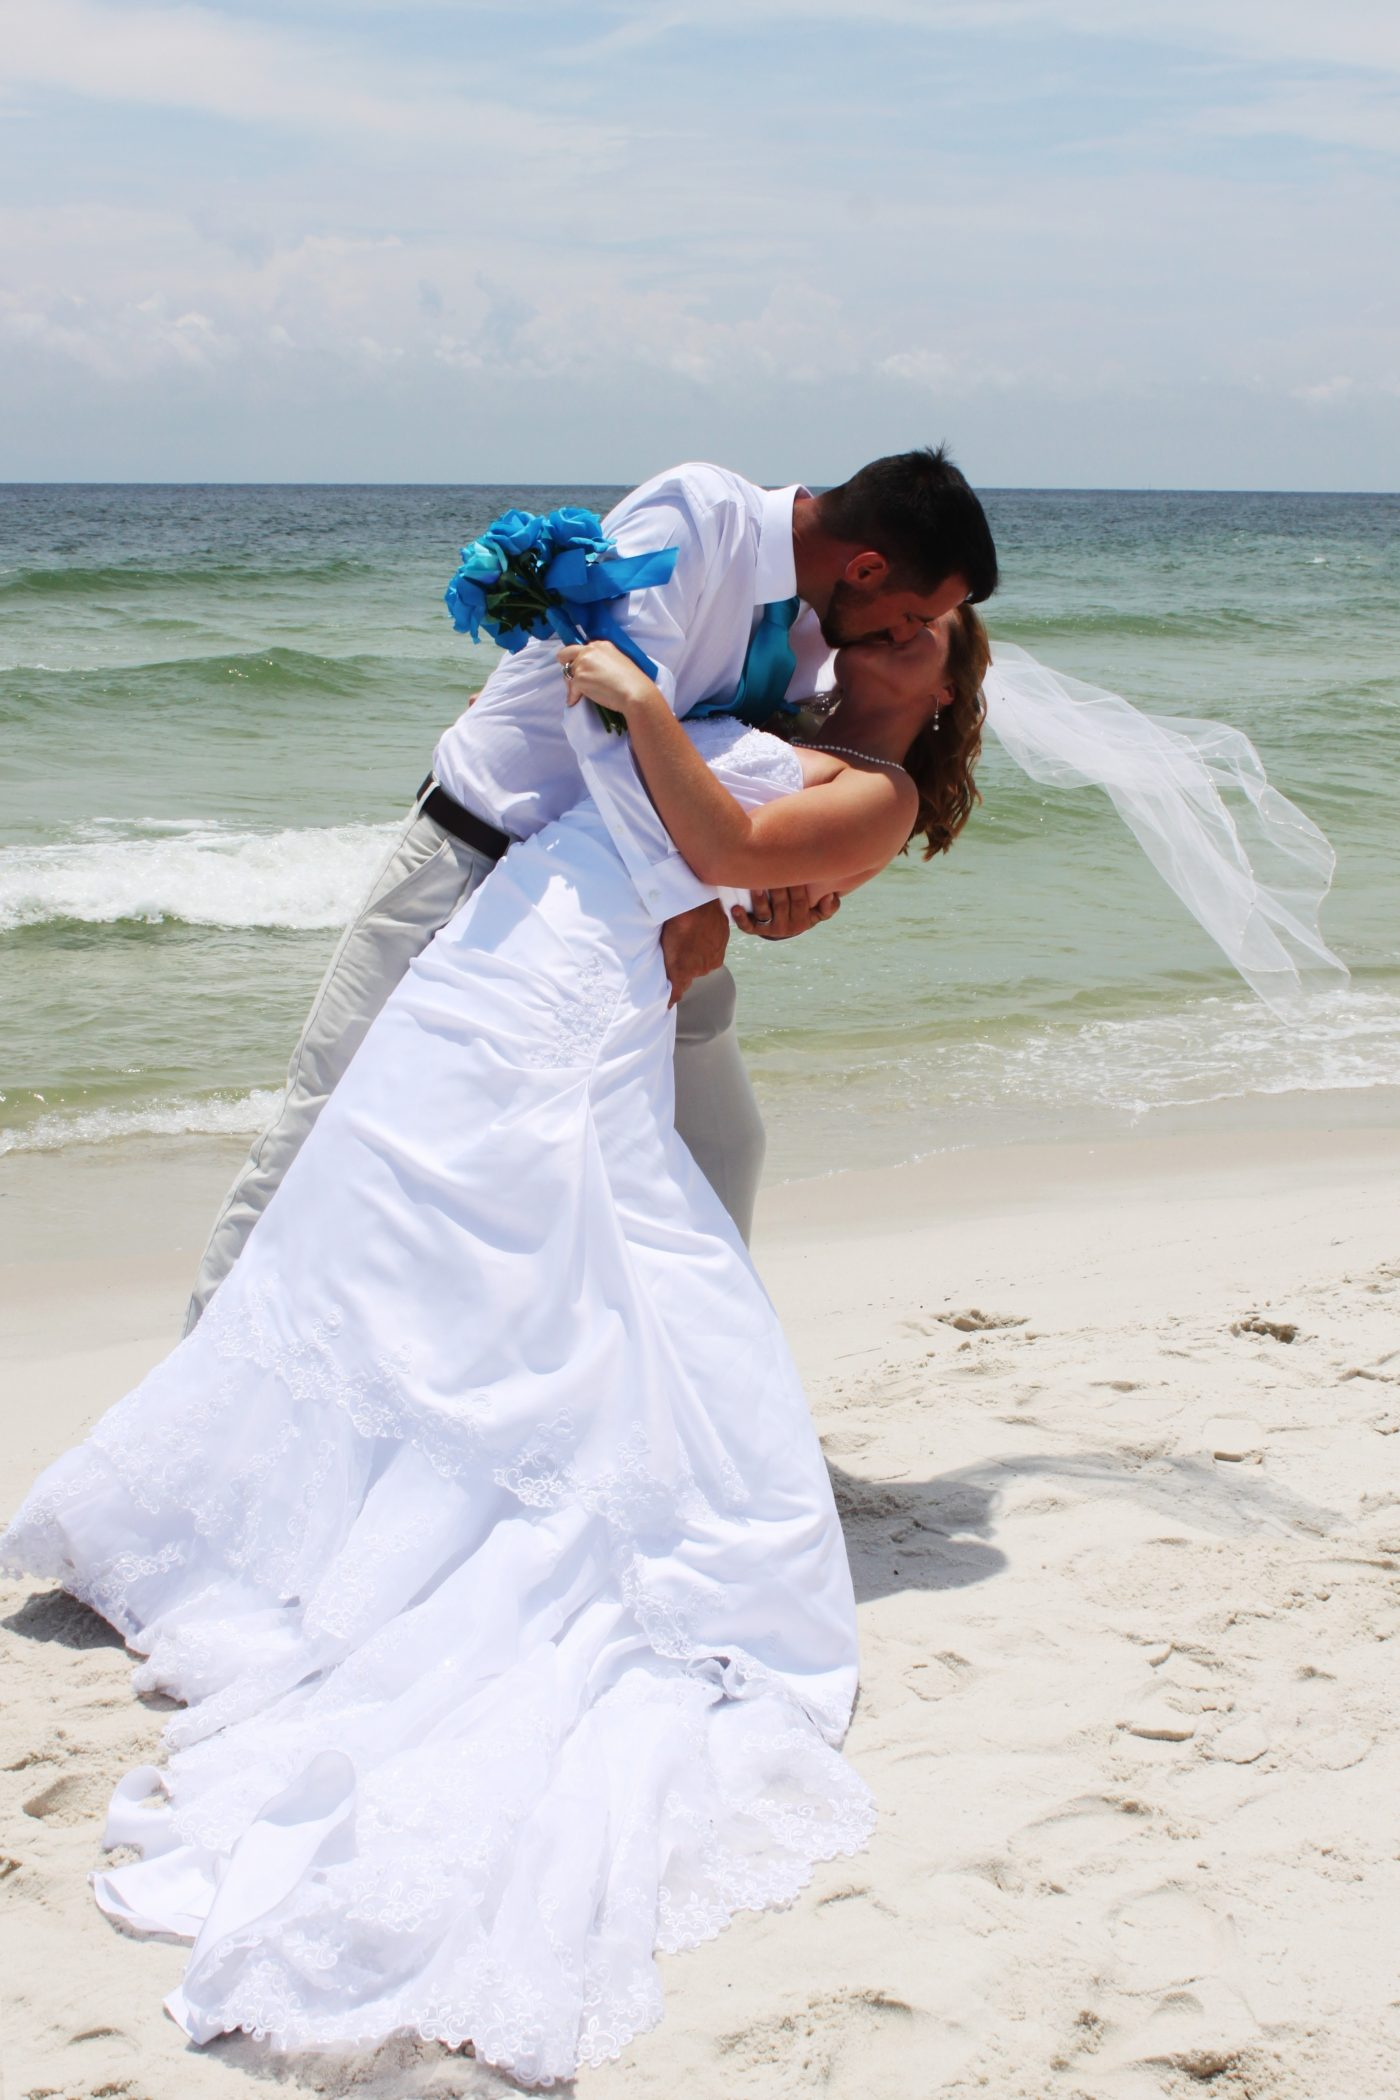 BEACH WEDDING ROMANCE